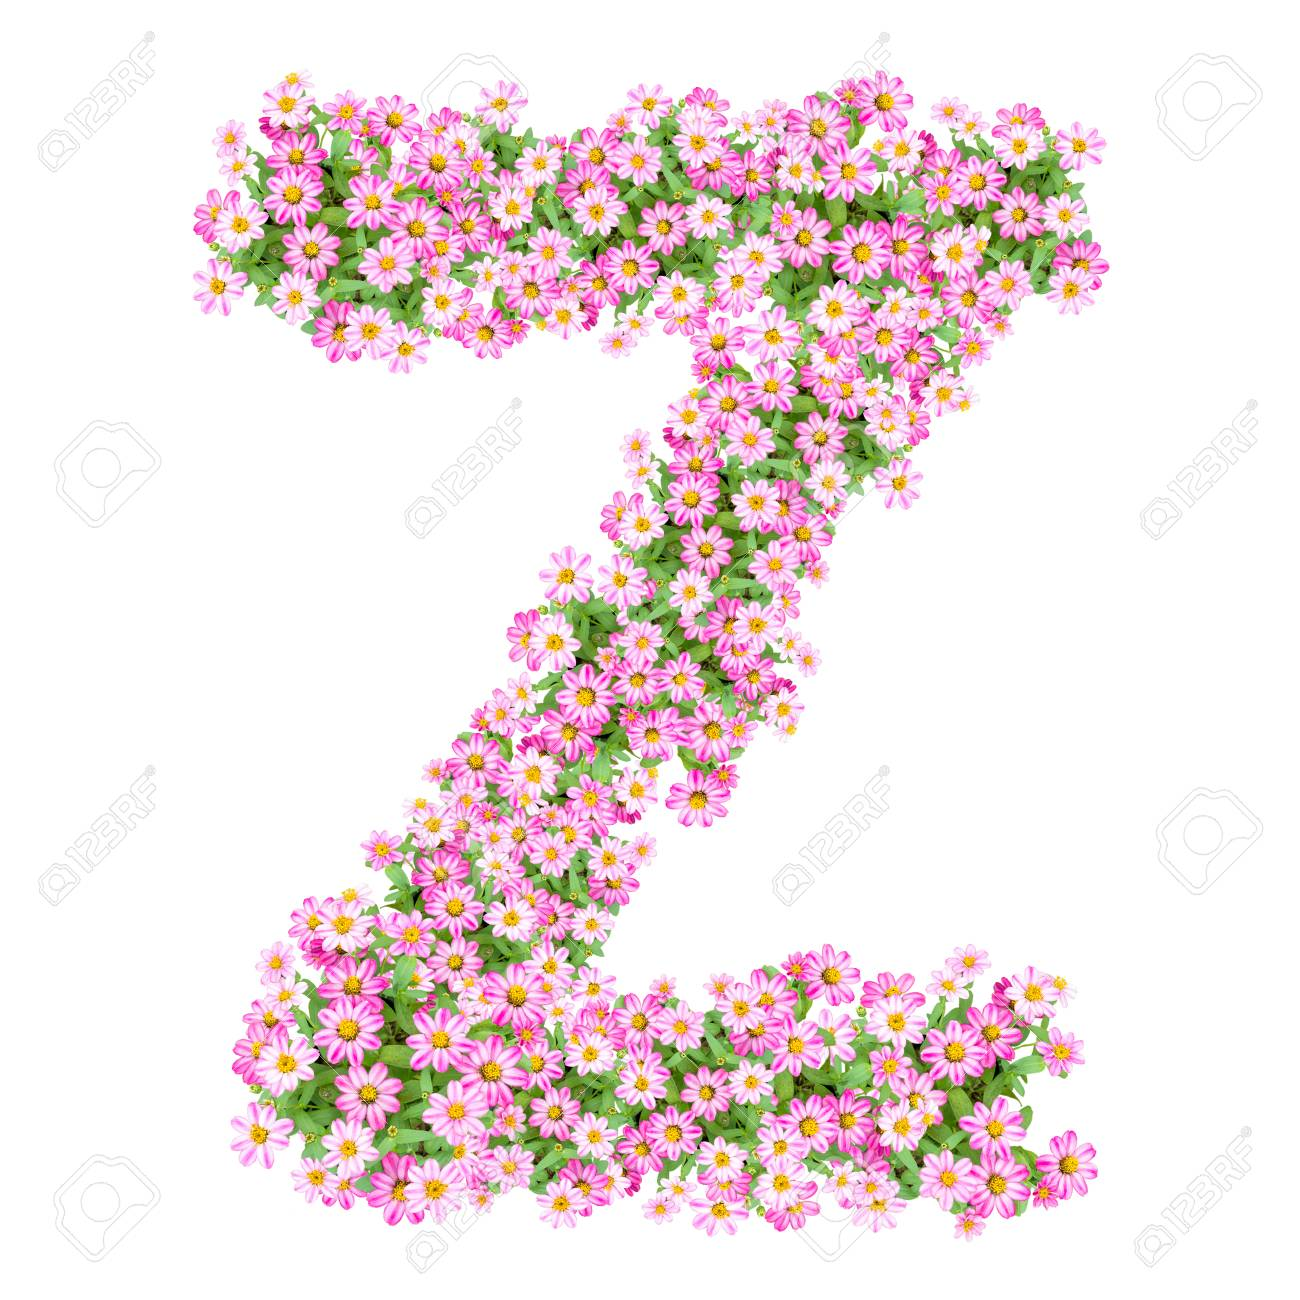 Letter Z Alphabet With Zinnia Flower ABC Concept Type As Logo Typography Design Stock Photo